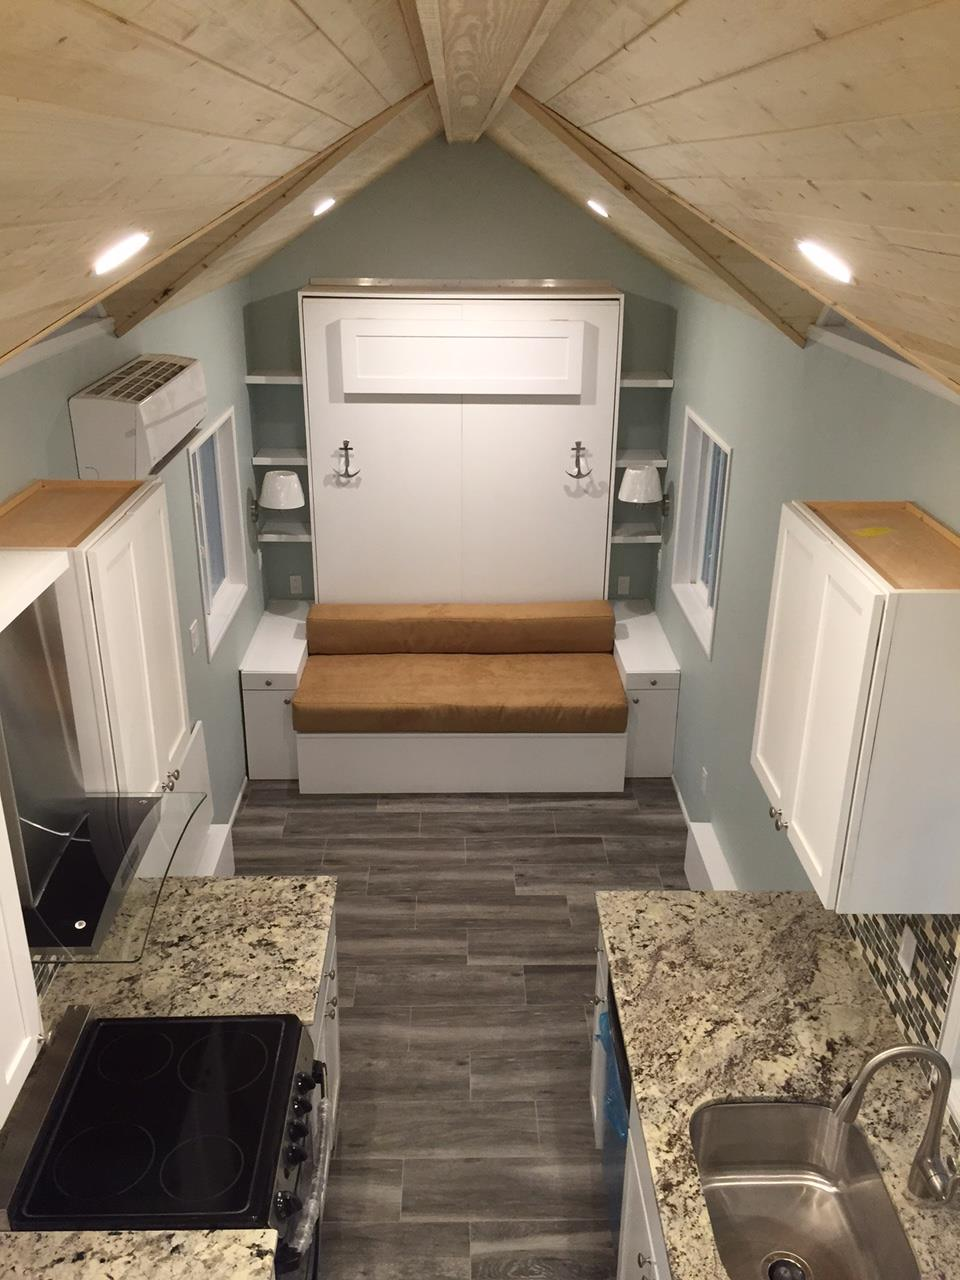 sofa dallas texas bed mechanism replacement uk tiny house town: the fontana beach